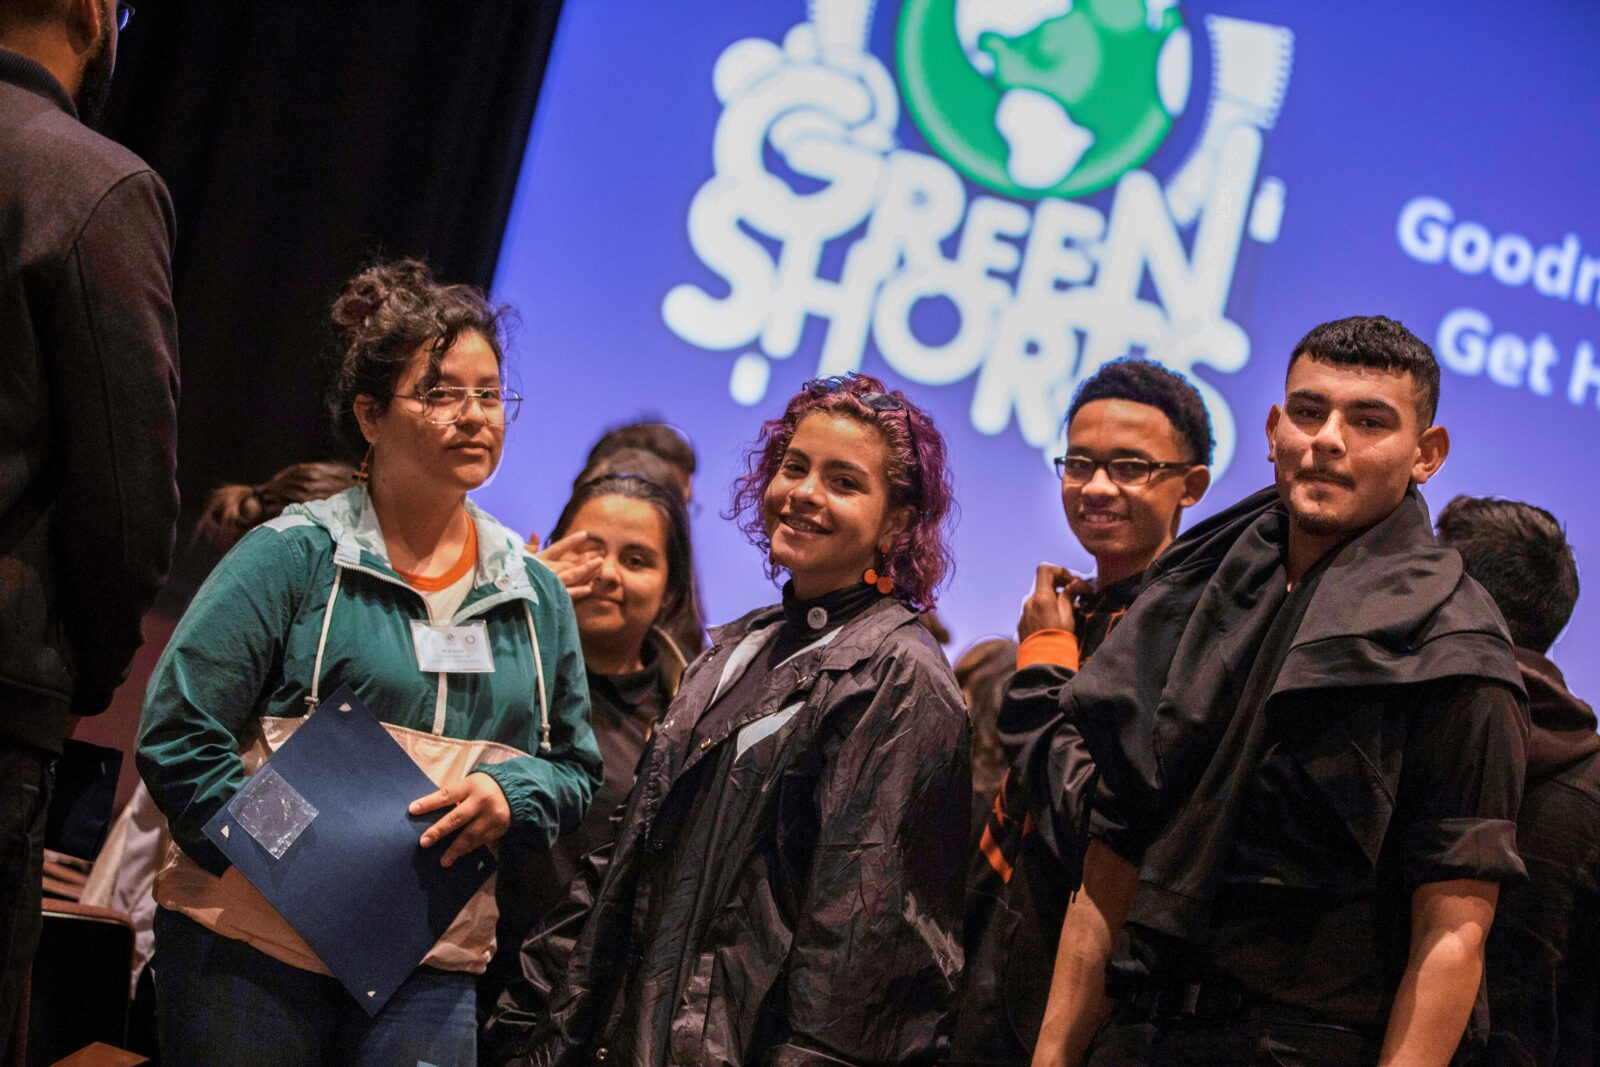 2020 greenshorts award ceremony